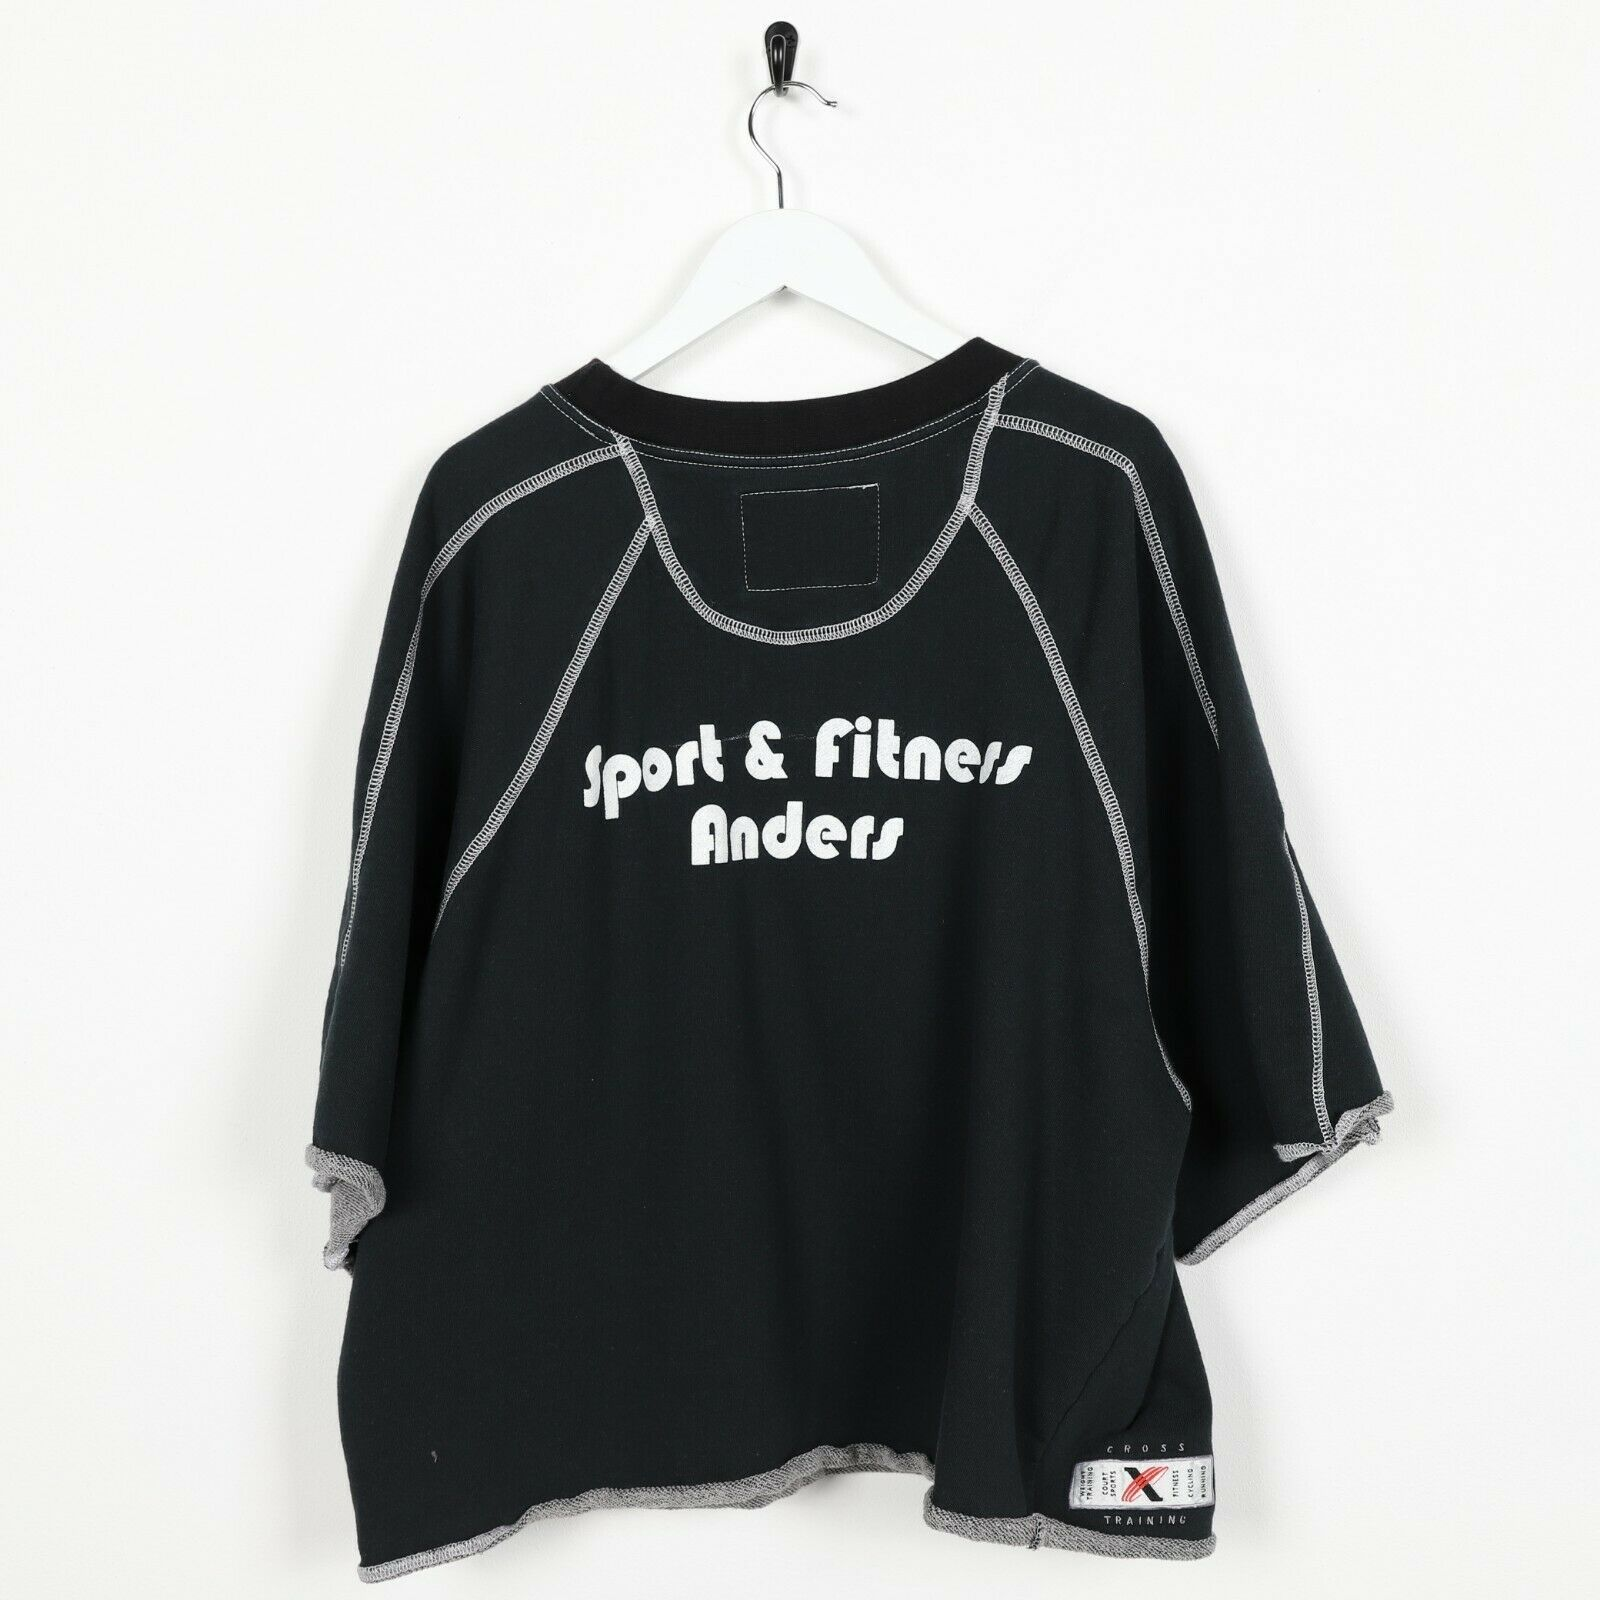 Vintage Women's NIKE Sport & Fitness Short Sleeve Sweatshirt Black | Large L